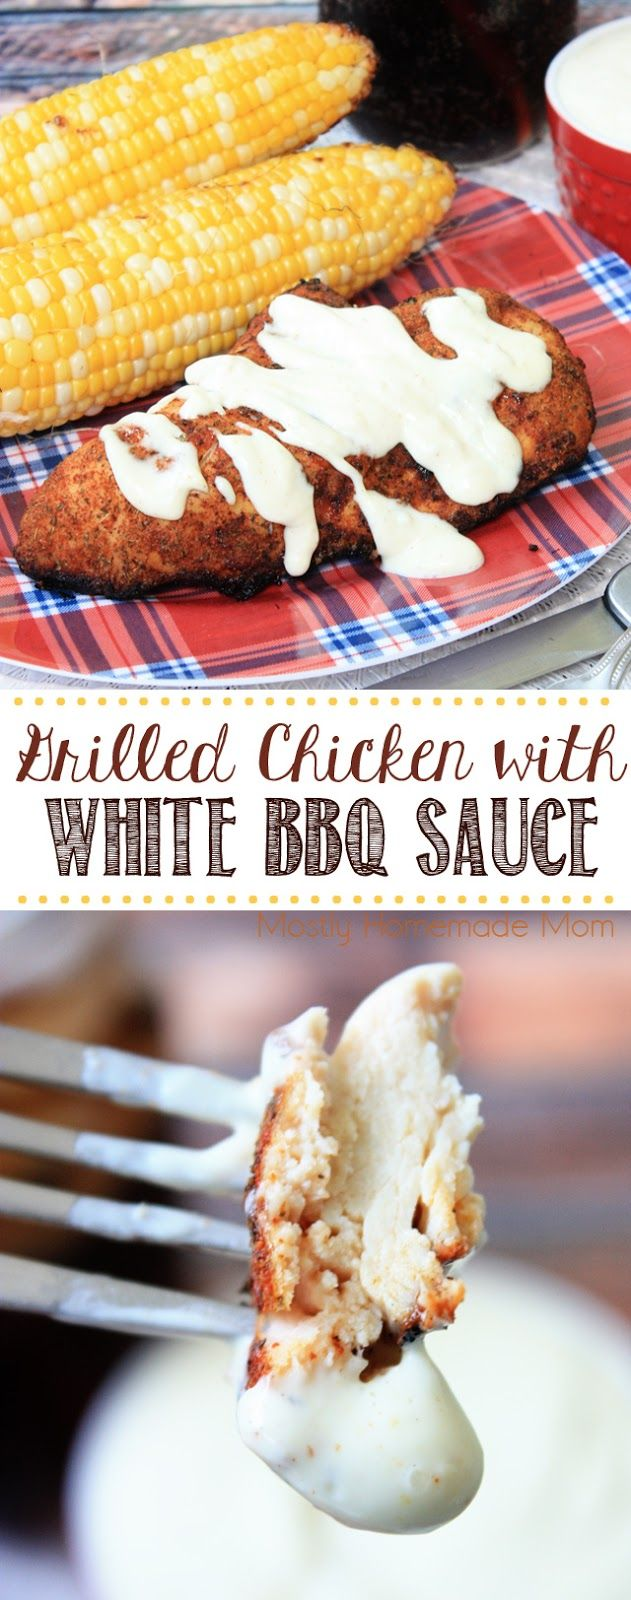 Grilled Chicken with White BBQ Sauce - the hit at your next cookout! Perfectly grilled chicken and a tangy white bbq sauce for dipping, yum!!